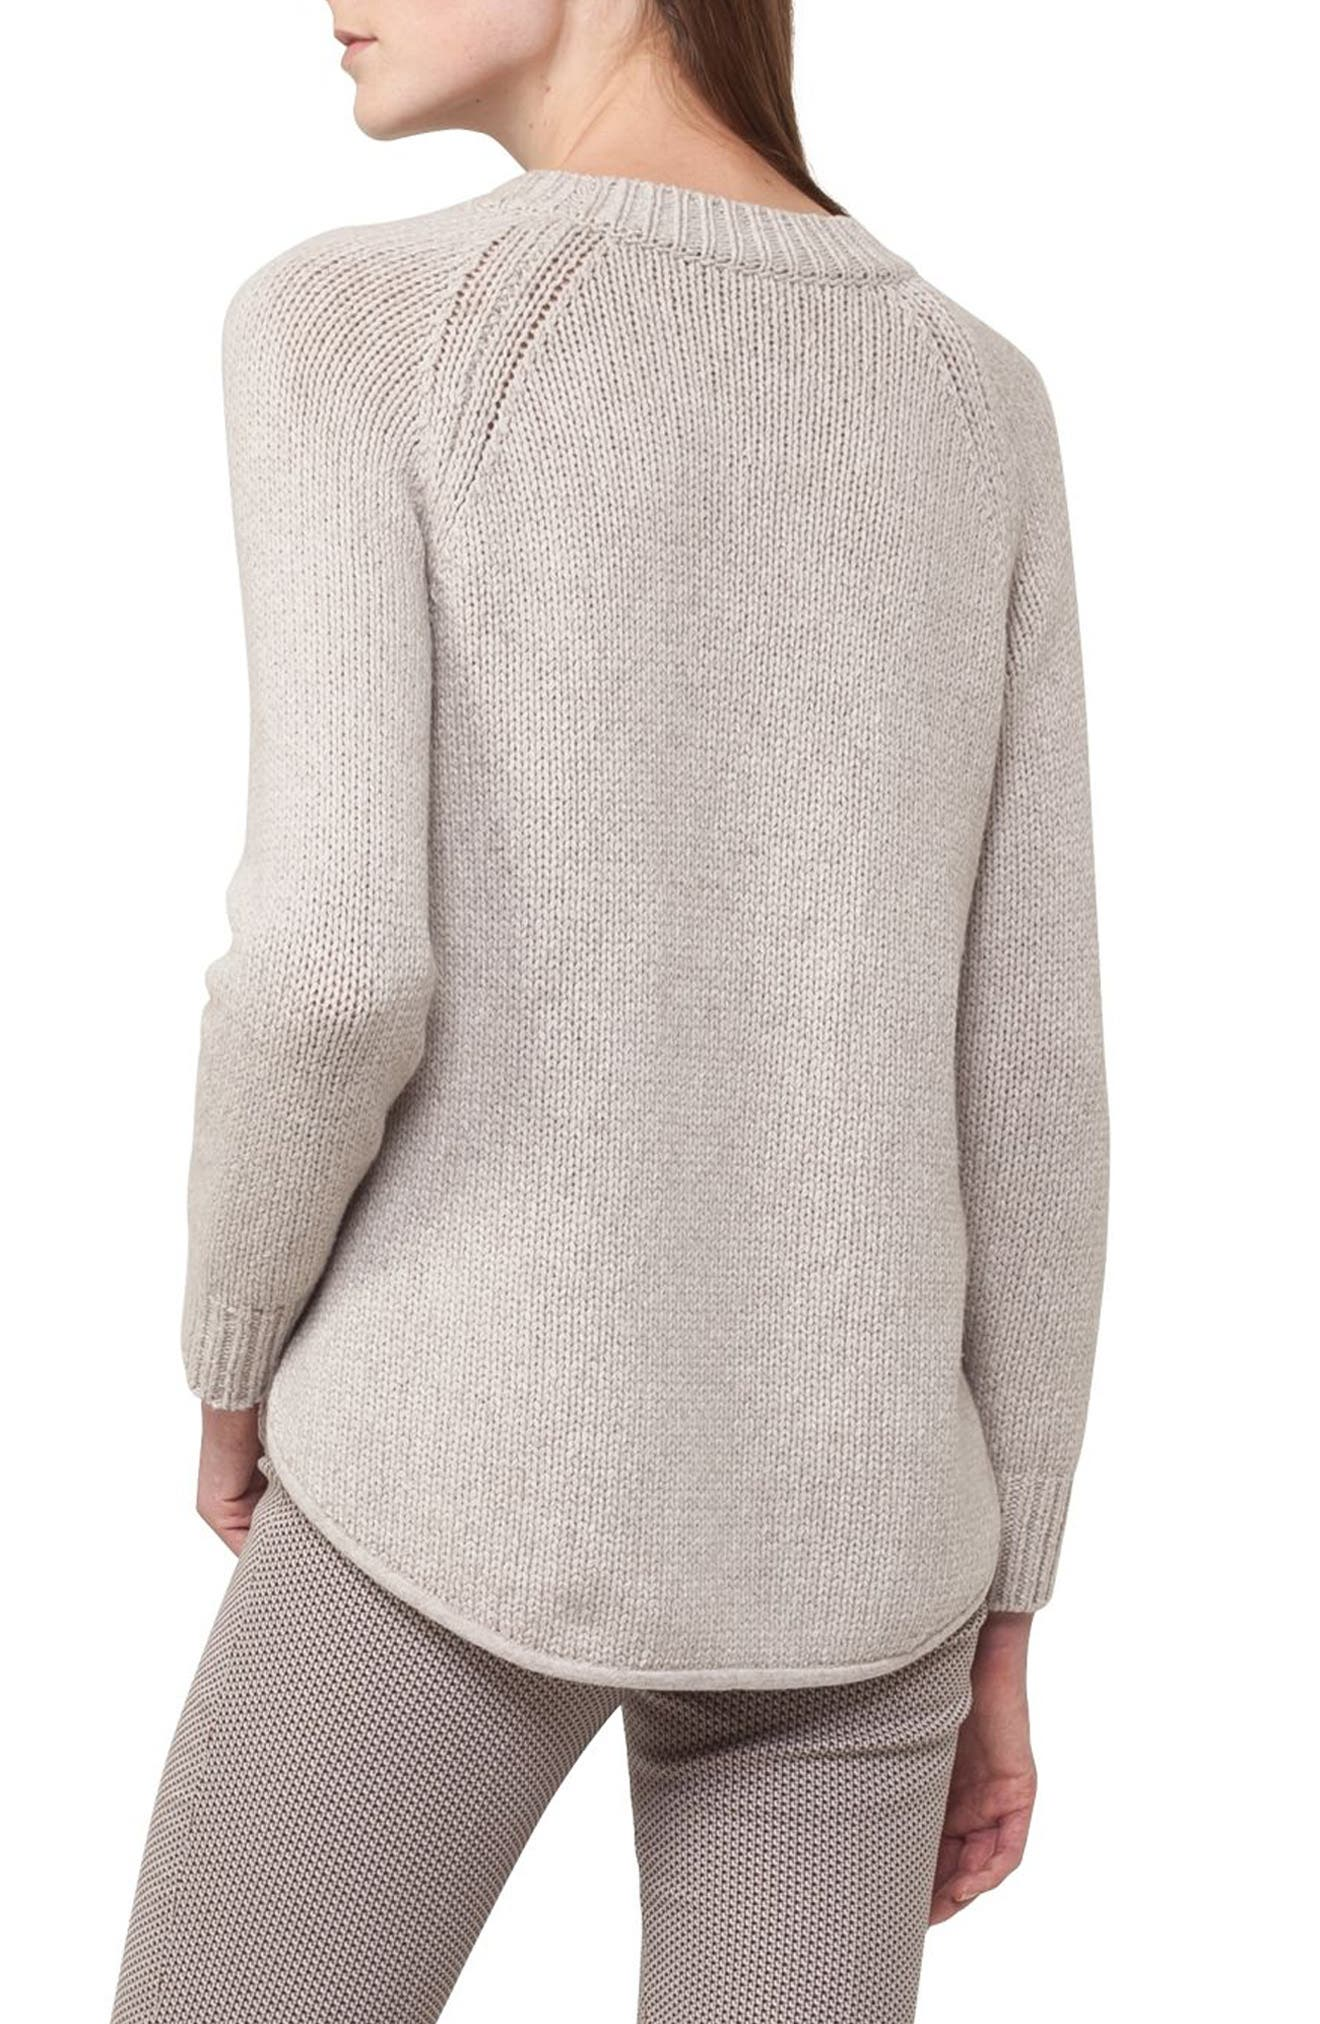 Quadrant Circle Cashmere Blend Pullover,                             Alternate thumbnail 3, color,